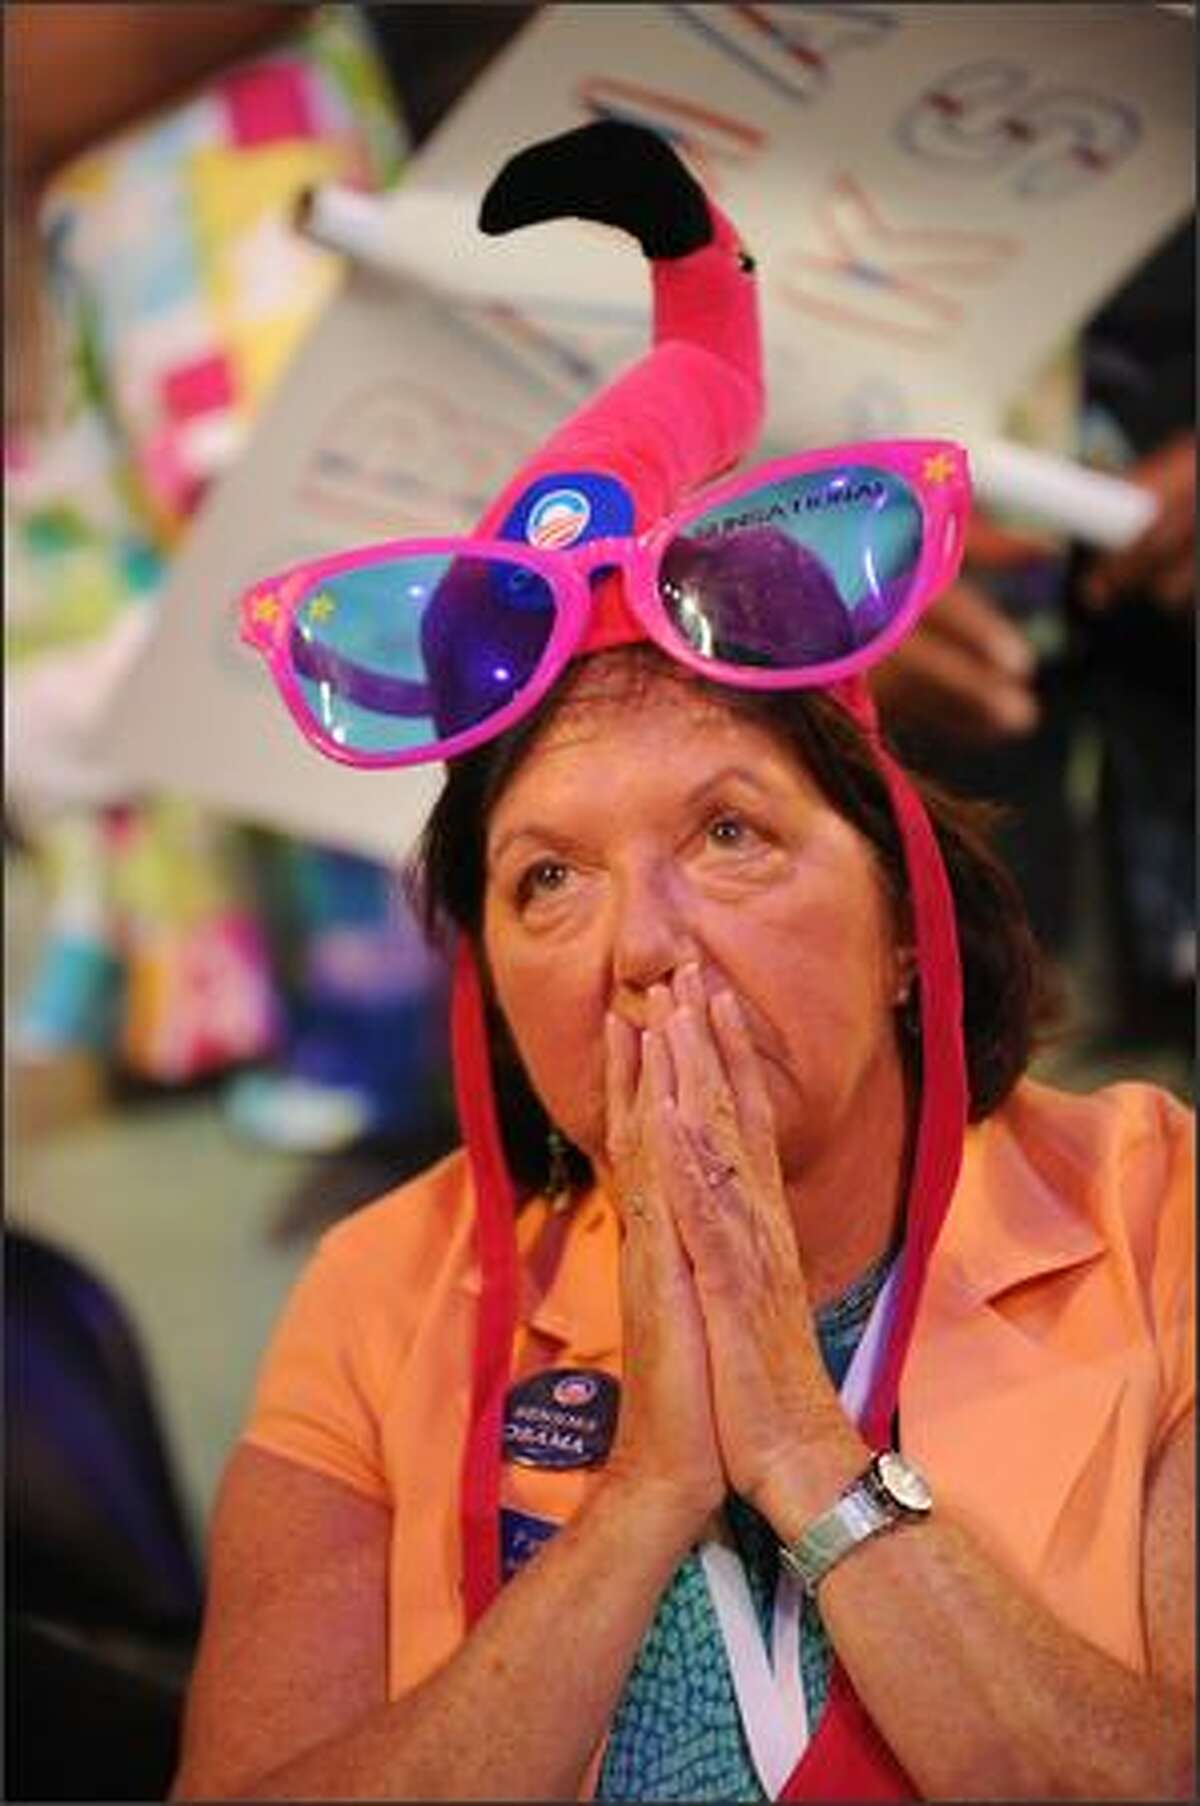 A delegate from Florida reacts to the address of Chair of the Democratic National Convention, Howard Dean during the opening speech at the Democratic National Convention 2008 at the Pepsi Center on Monday in Denver, Colorado.